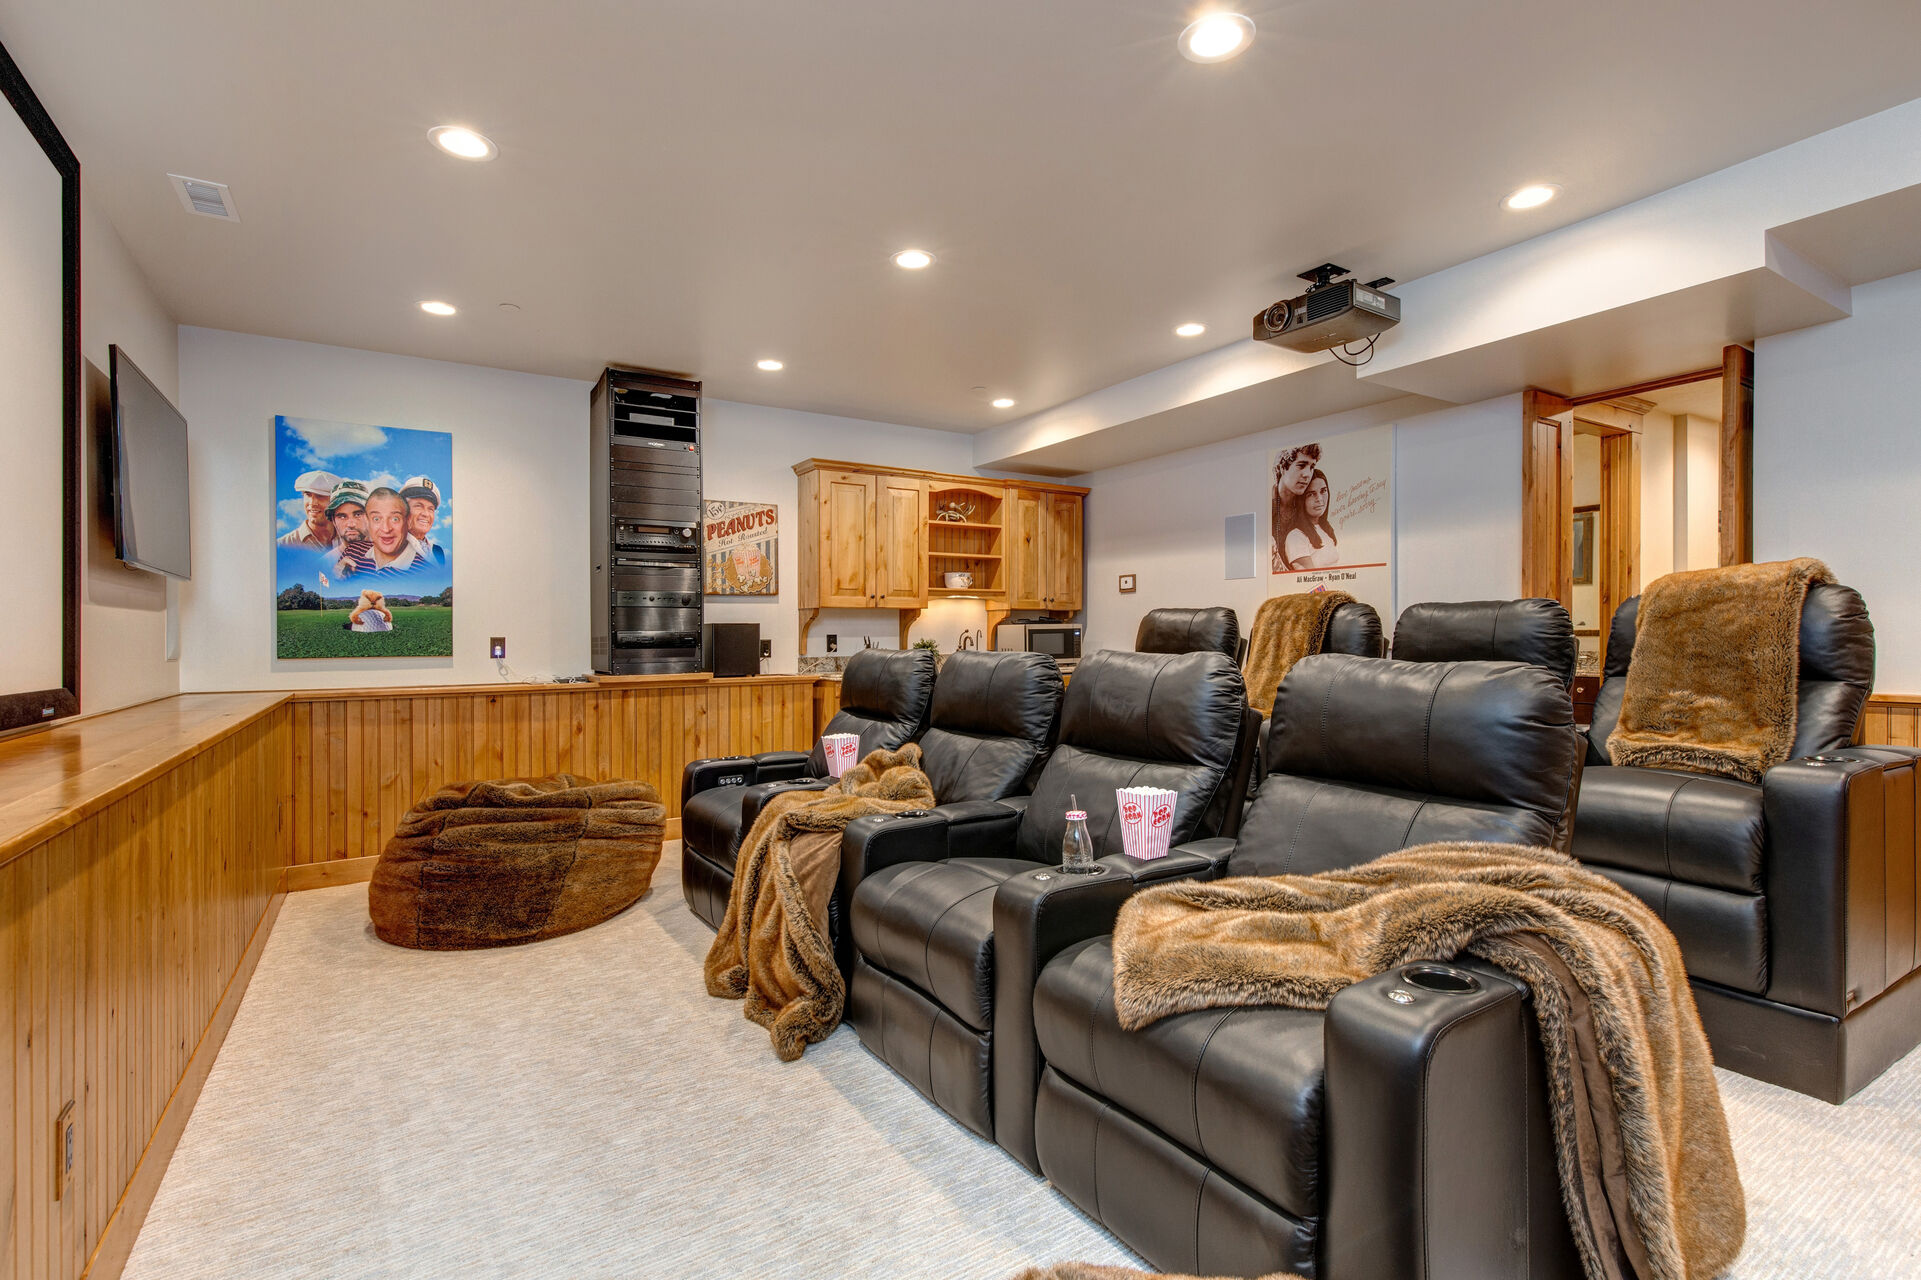 Theater Room with a Big Screen and Two 50